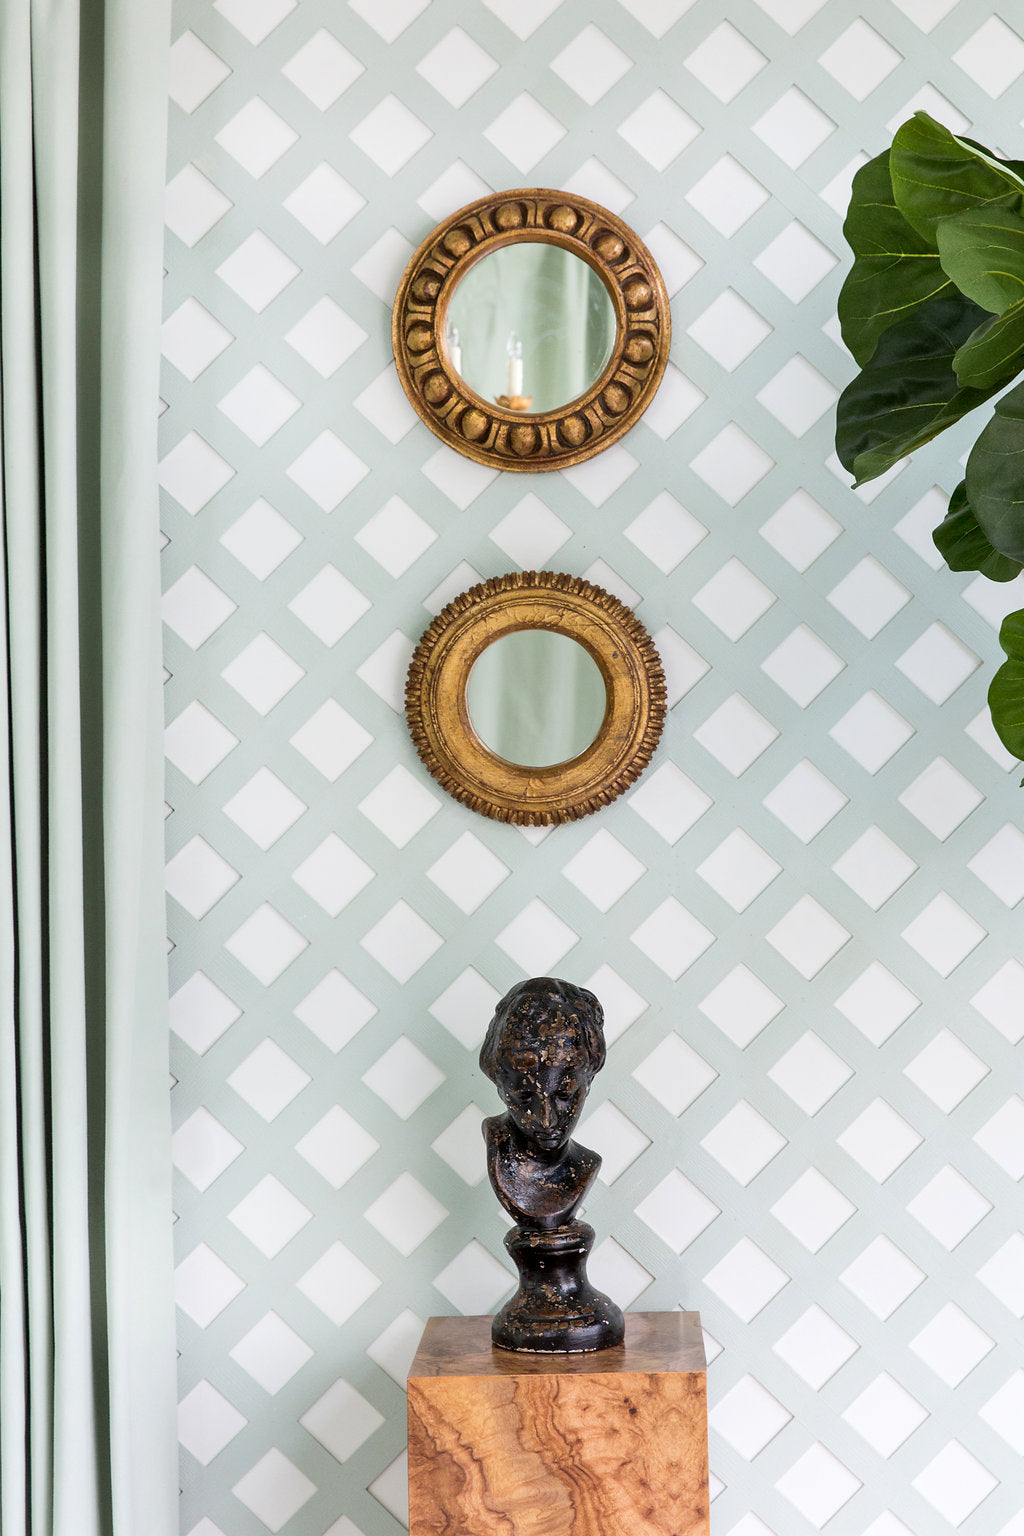 We love the simplicity of this vignette, and the beauty of the juxtaposition against the pretty trellis background.